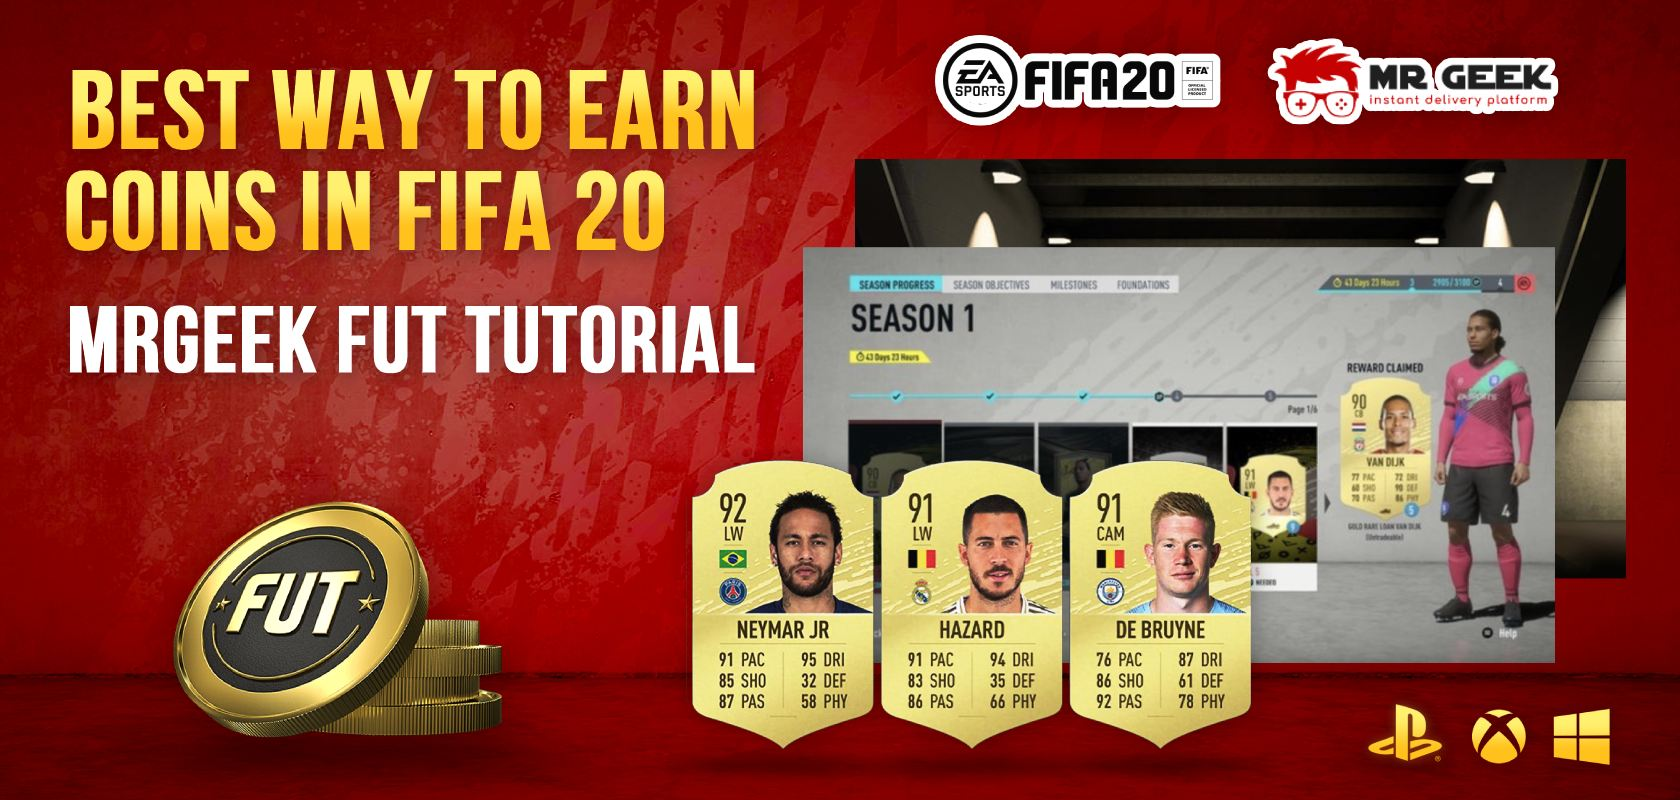 Best Way to Earn Coins in FIFA 20 - MrGeek FUT Tutorial